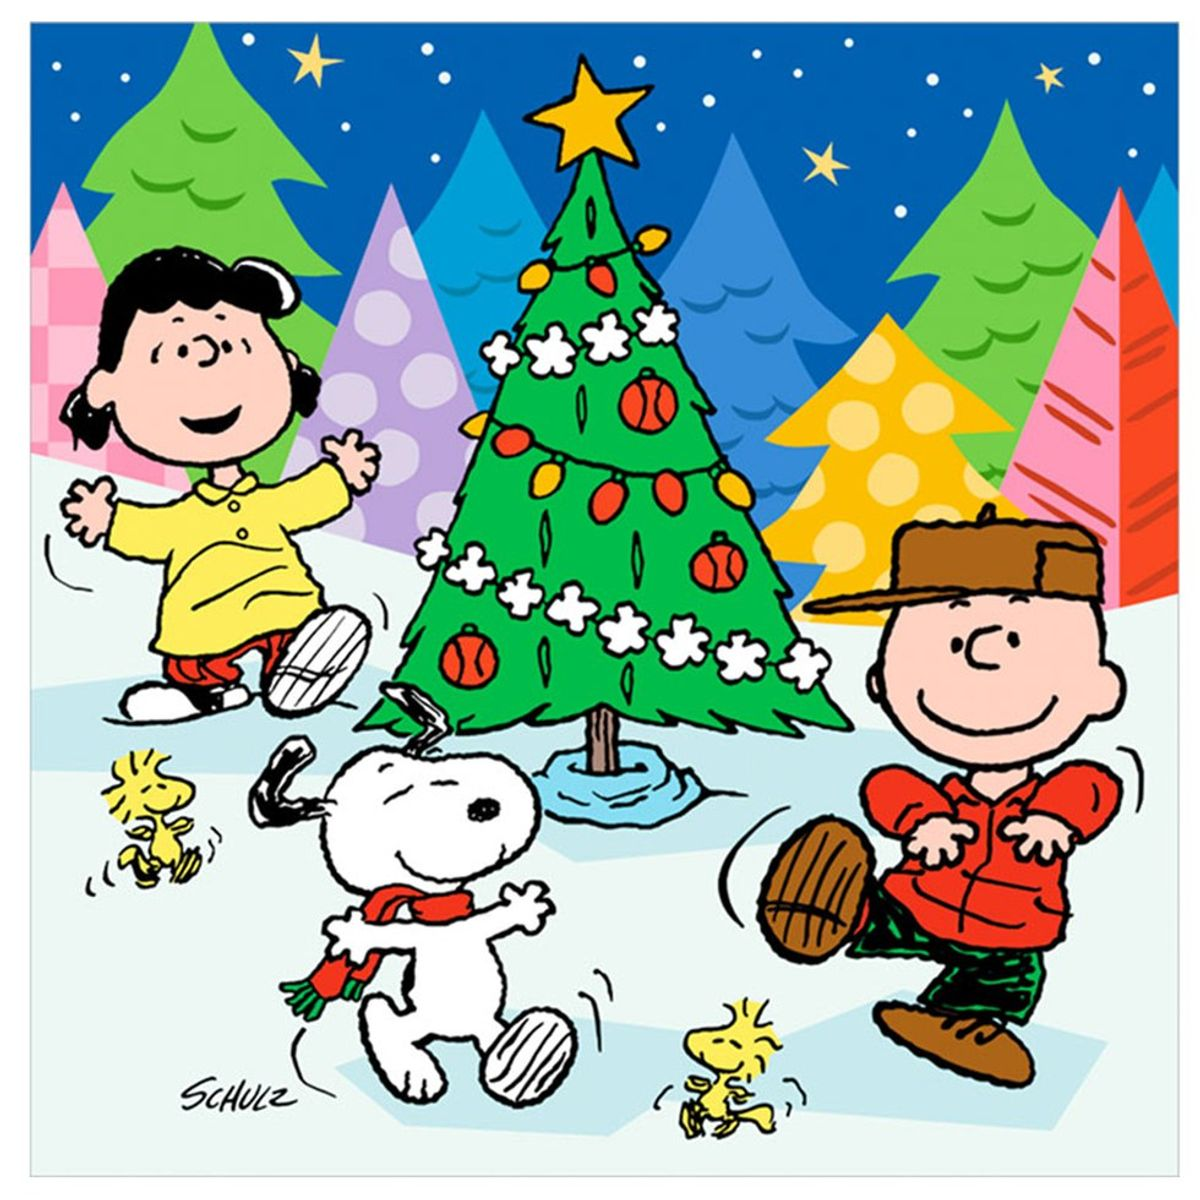 My Favorite Things About The Christmas Season (As Told By The PEANUTS Characters)